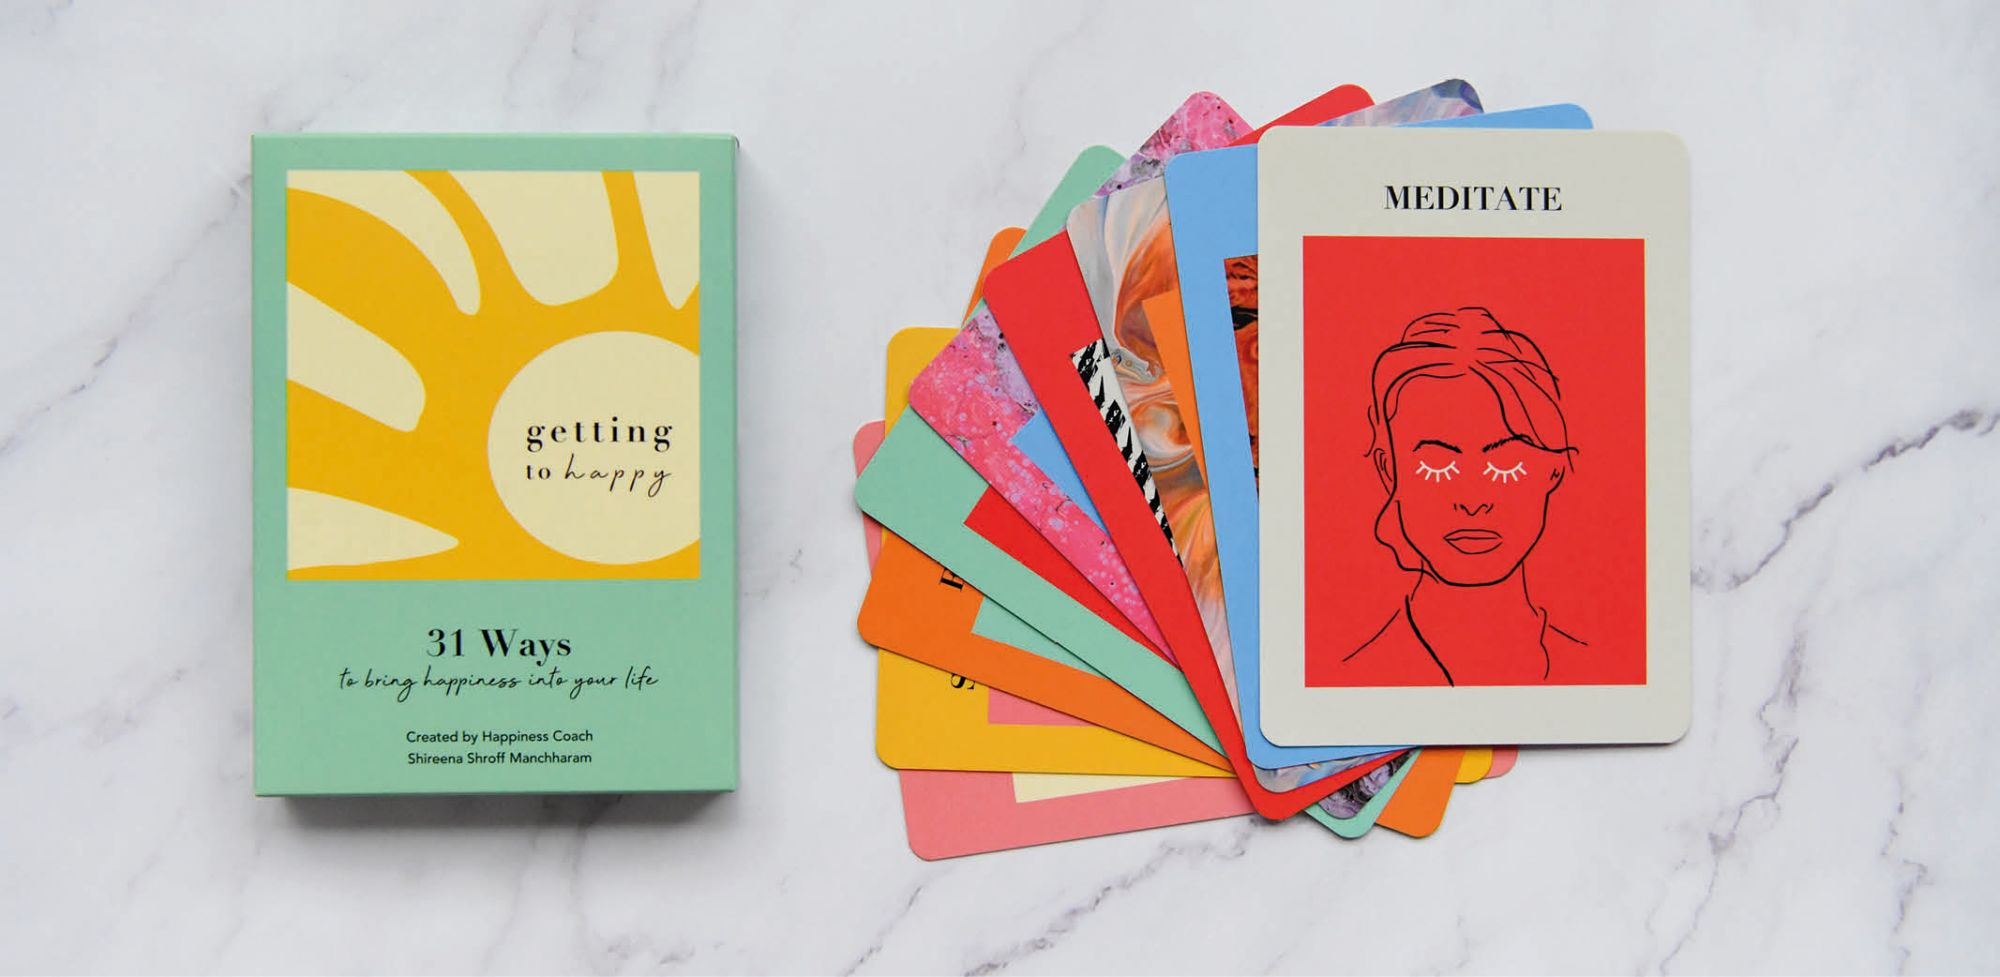 Keen on Practising Gratitude? ShireenaShroff Manchharam's Deck of Cards Can Guide You